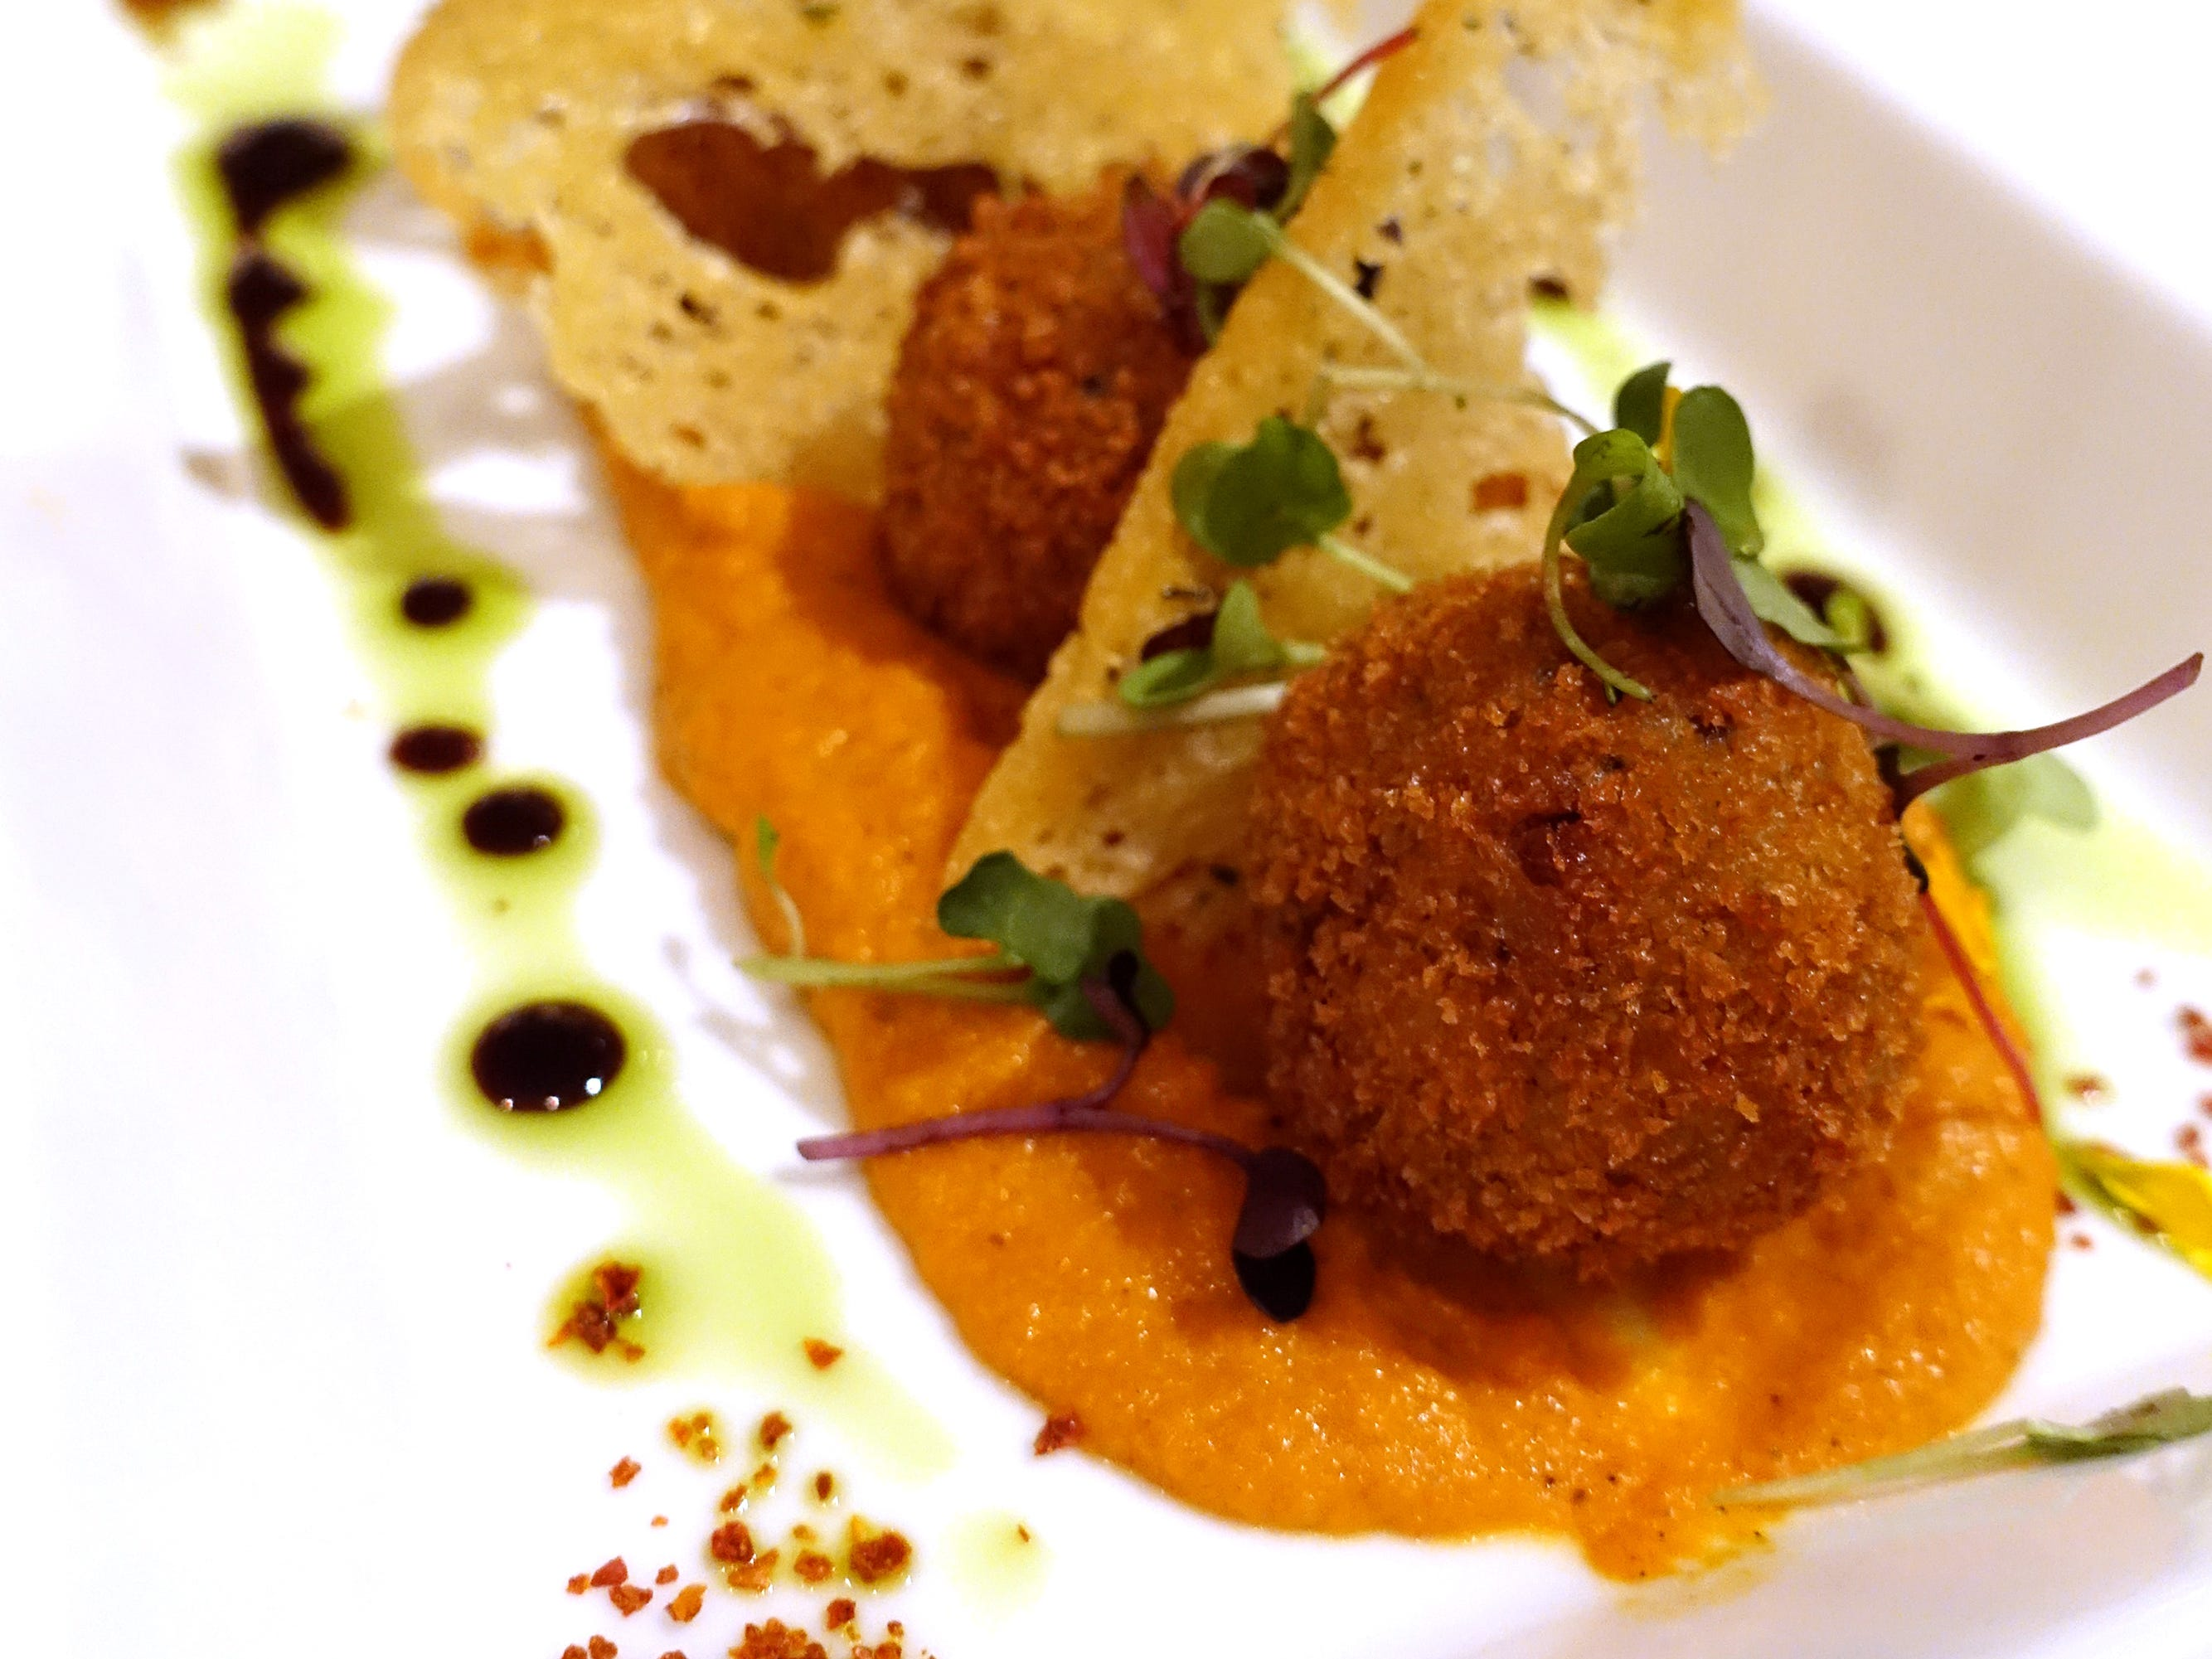 Truffled arancini with mushroom duxelles, ricotta and Romesco at Casa Terra in Glendale.